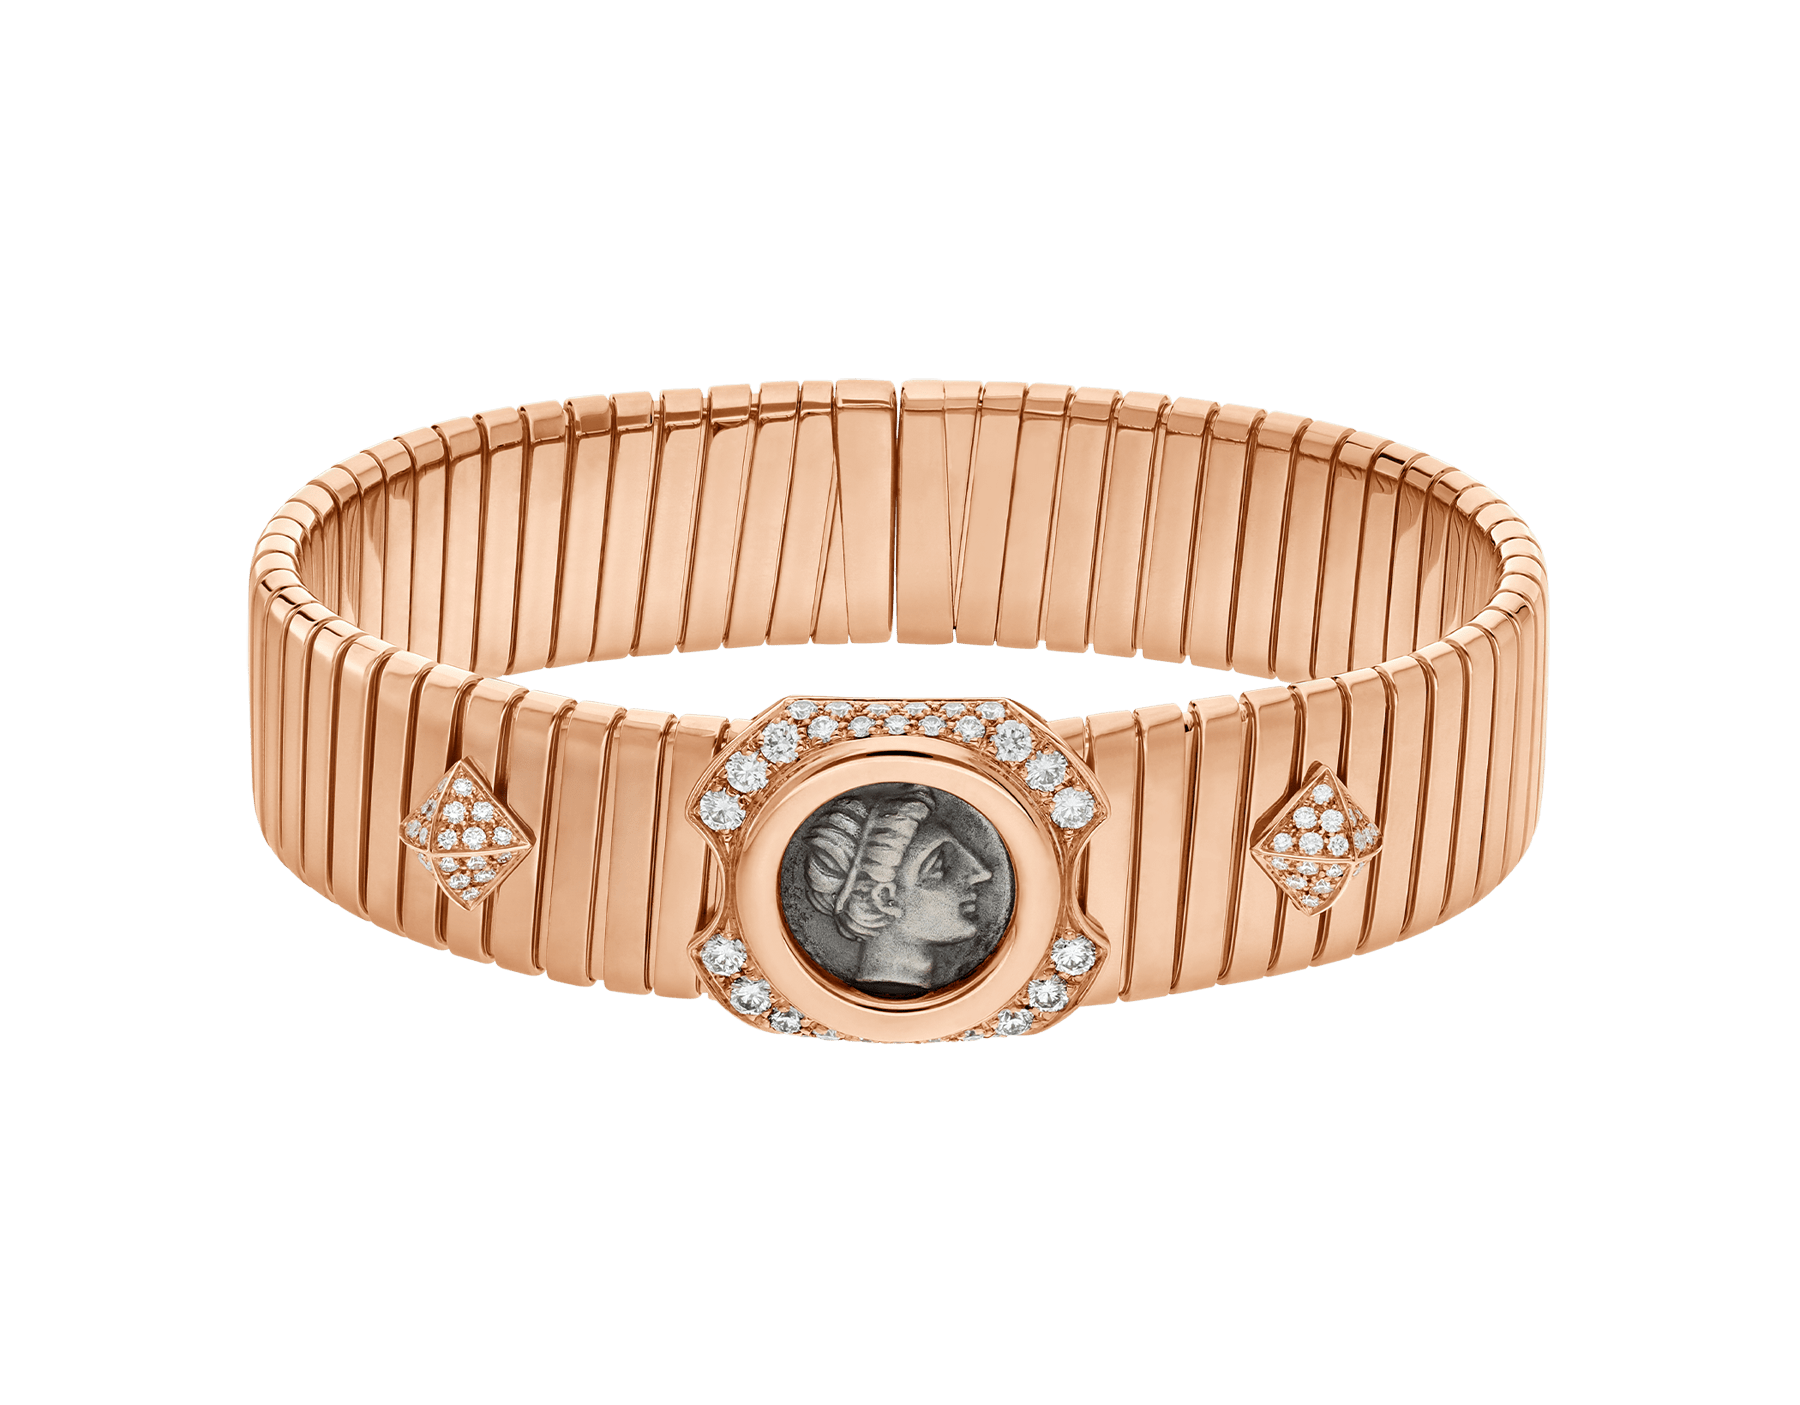 Monete 18 kt rose gold bracelet set with an ancient coin and pavé diamonds. The coins used are in bronze or silver and come from the Mediterranean basin and Europe. Some of them date back to the 5th century B.C., others are from the 5th century A.D. A brief description of each coin's origin is engraved on the reverse of the setting. 356508 image 2